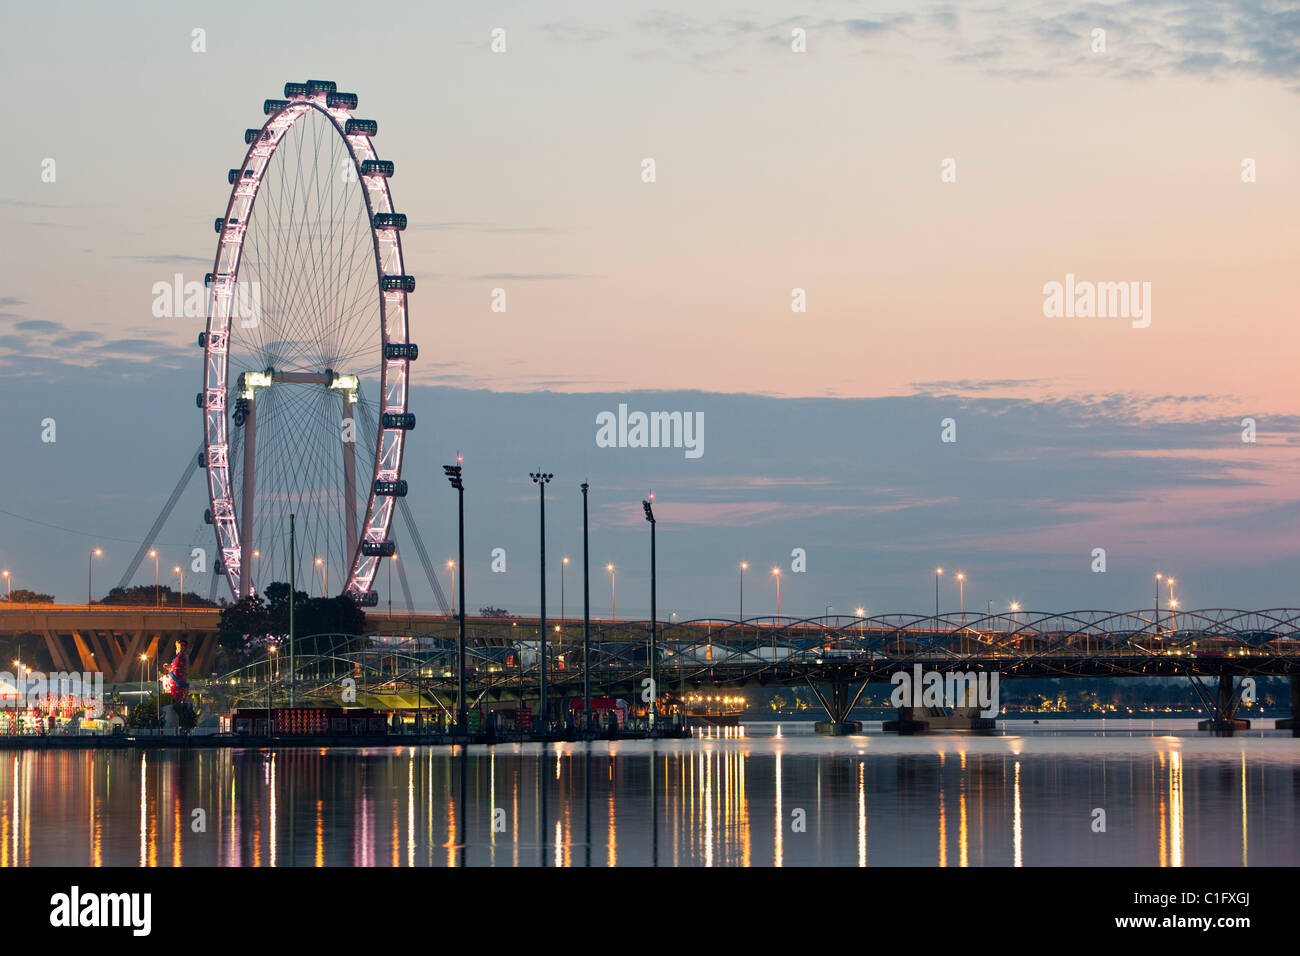 The Singapore Flyer observation wheel, Marina Bay, Singapore - Stock Image